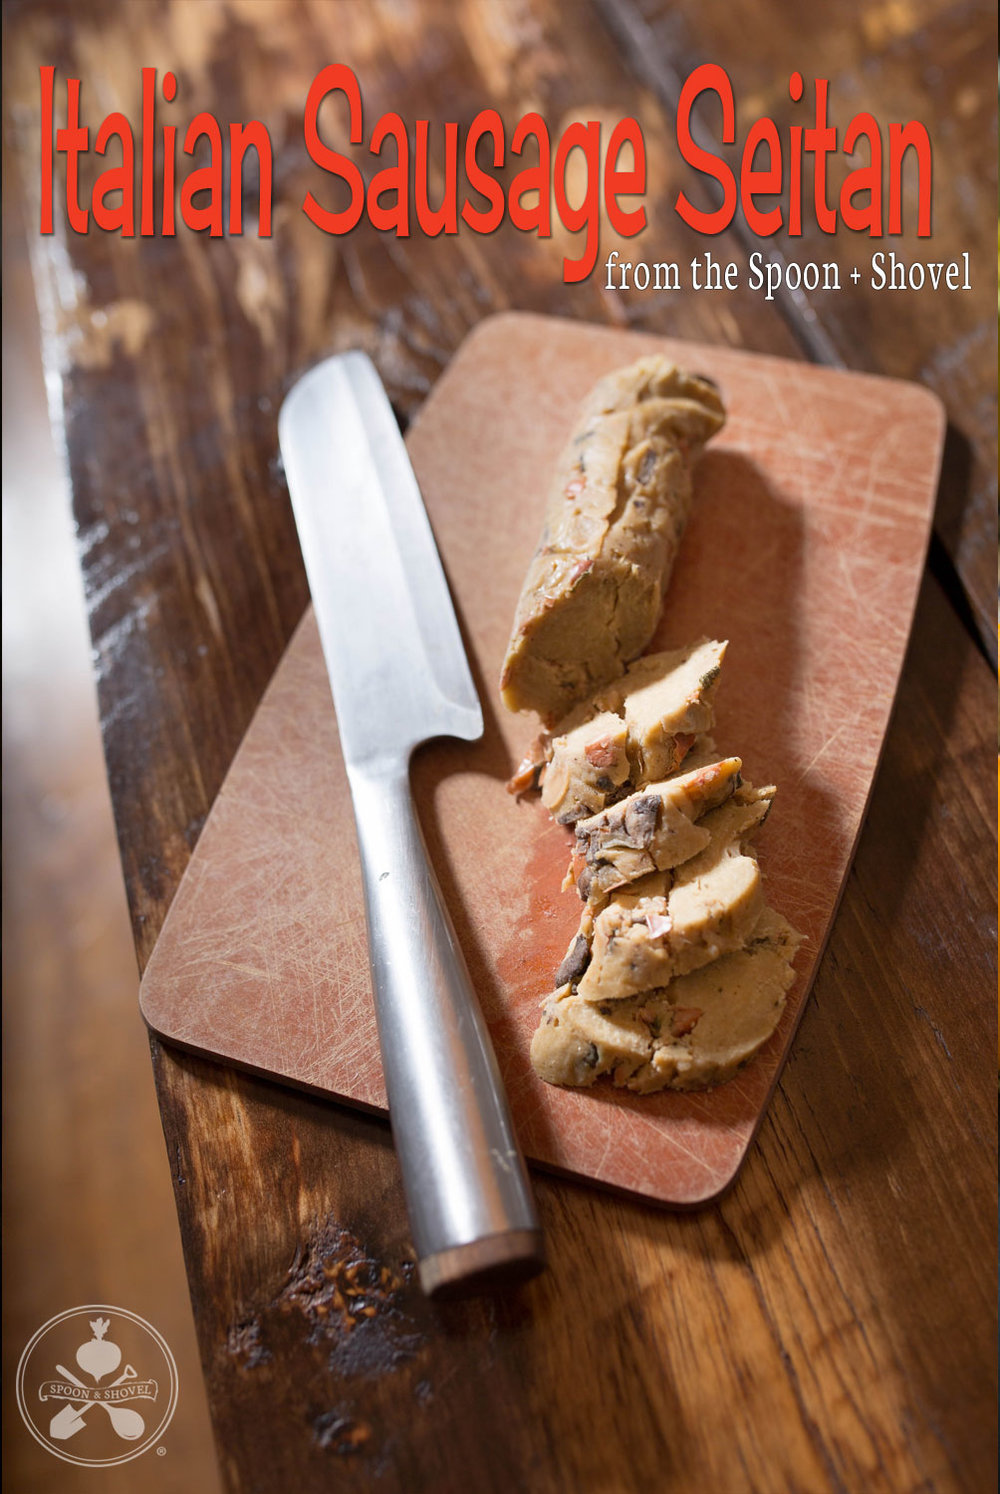 Italian Sausage Seitan from The Spoon + Shovel